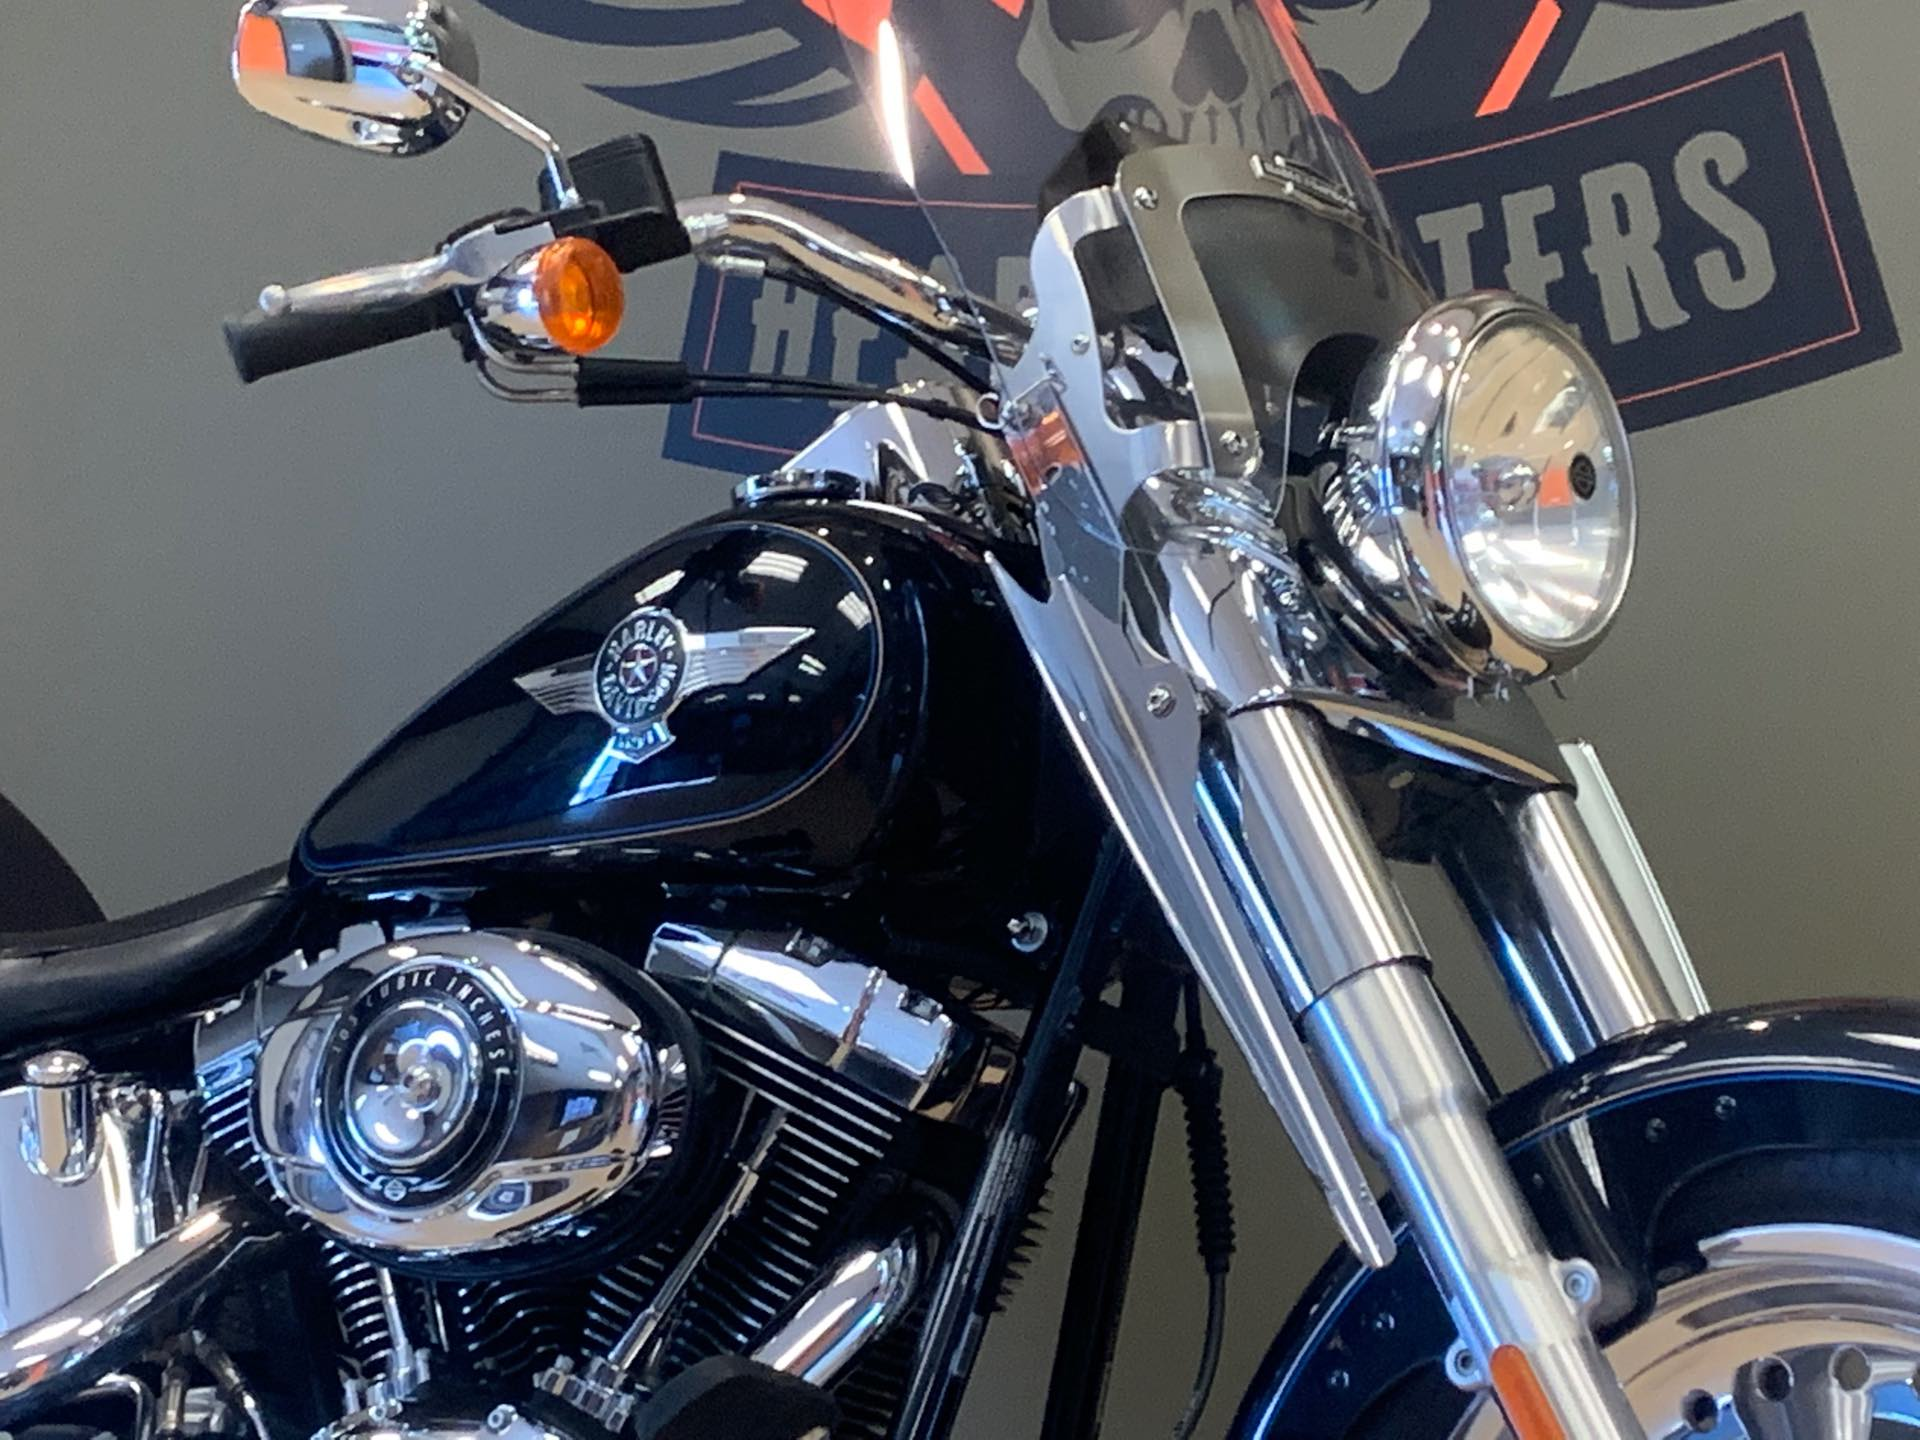 2013 Harley-Davidson Softail Fat Boy at Loess Hills Harley-Davidson